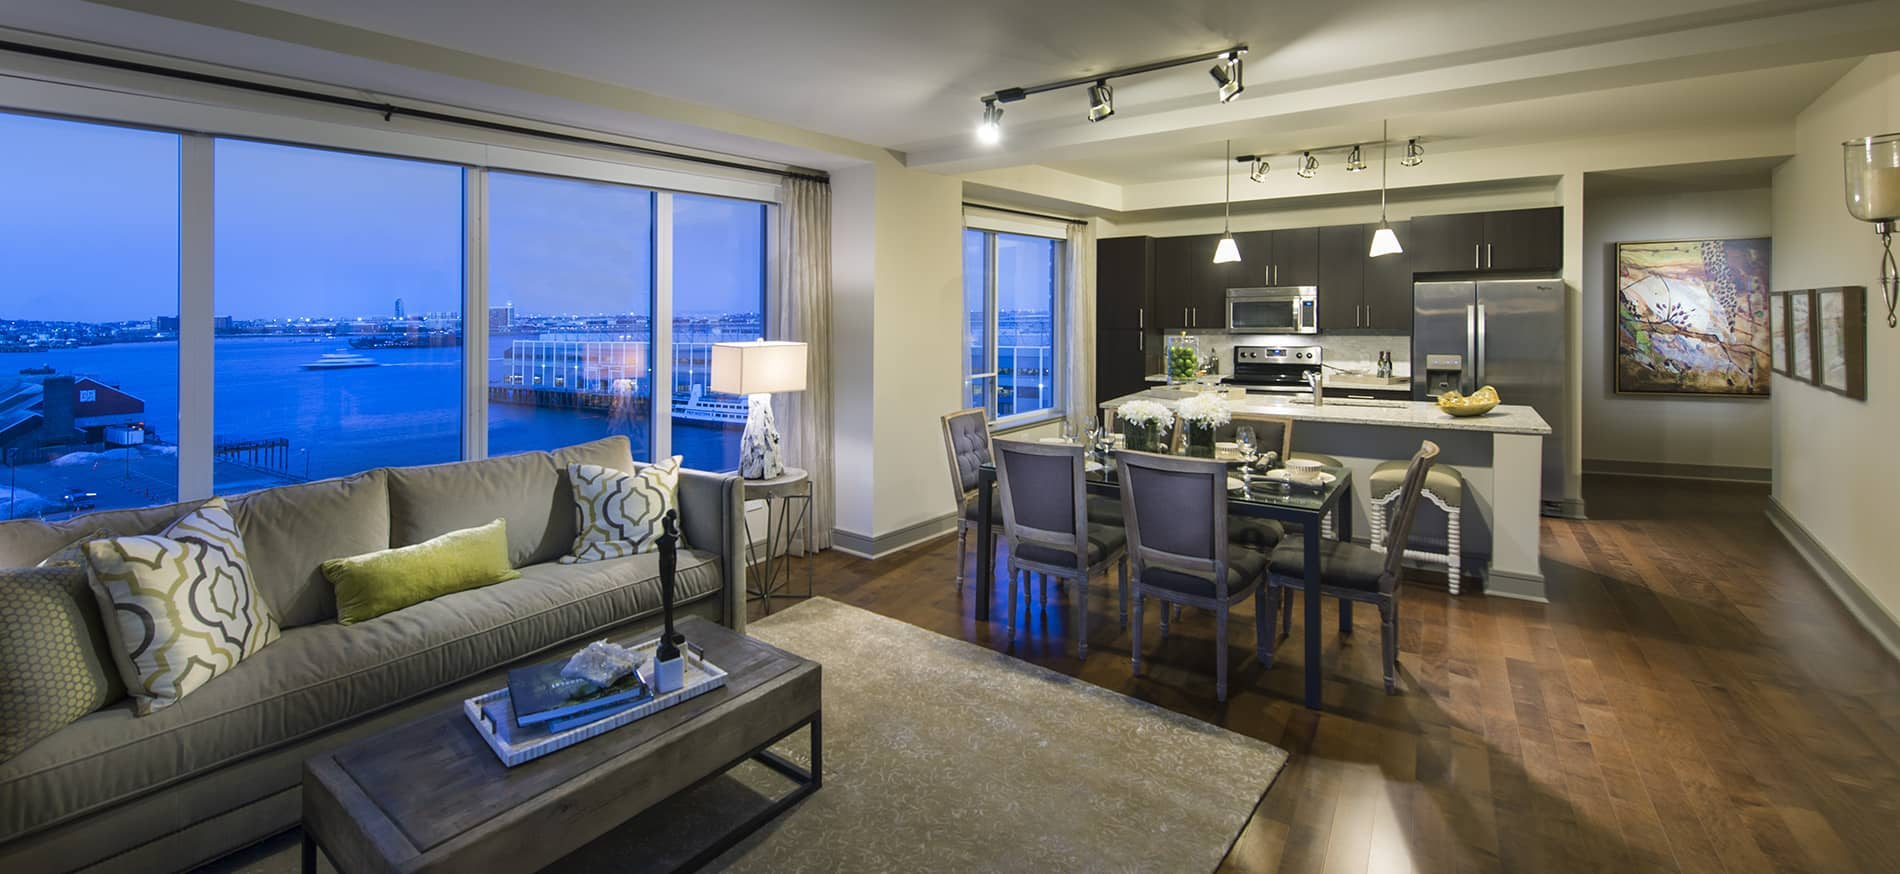 2 bedroom condos for rent in boston plans 100 pier living room floor plans and pricing for seaport boston